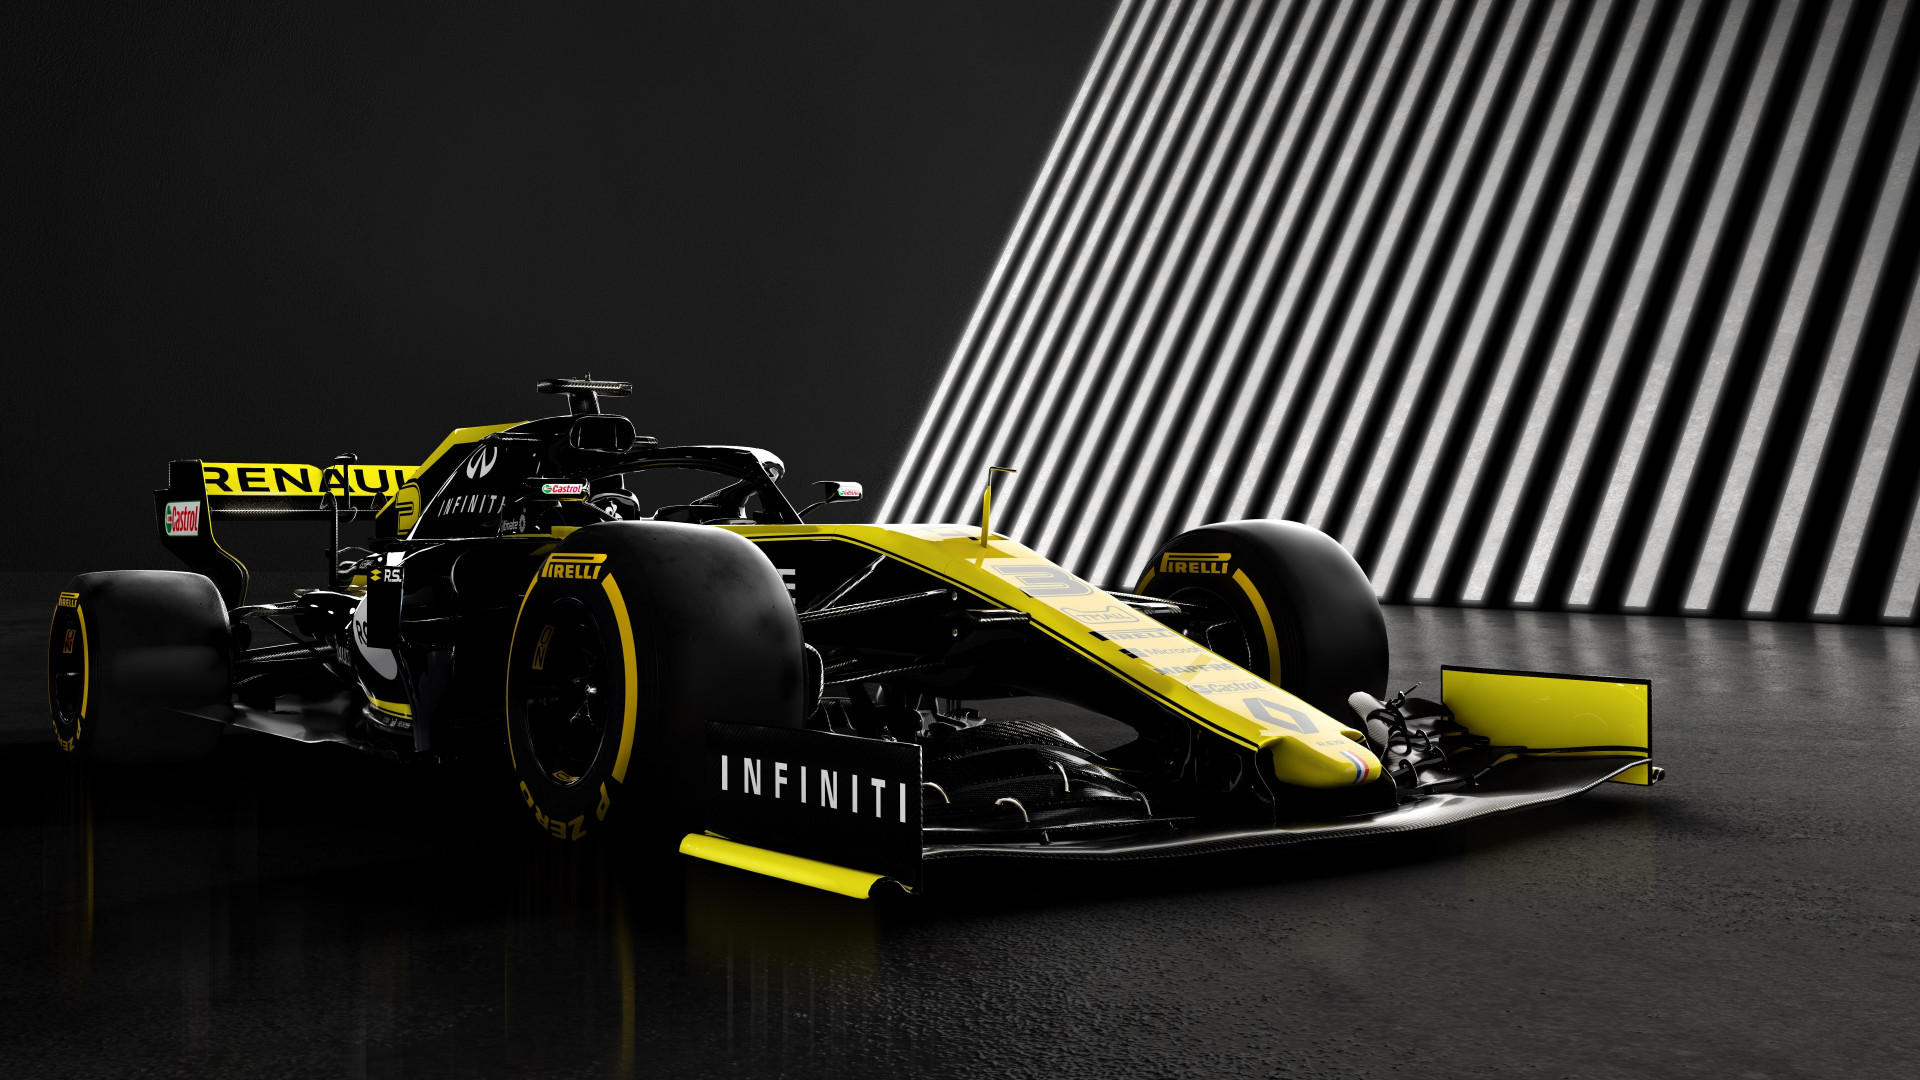 Download wallpaper Renault F1 RS19 1920x1080 1920x1080